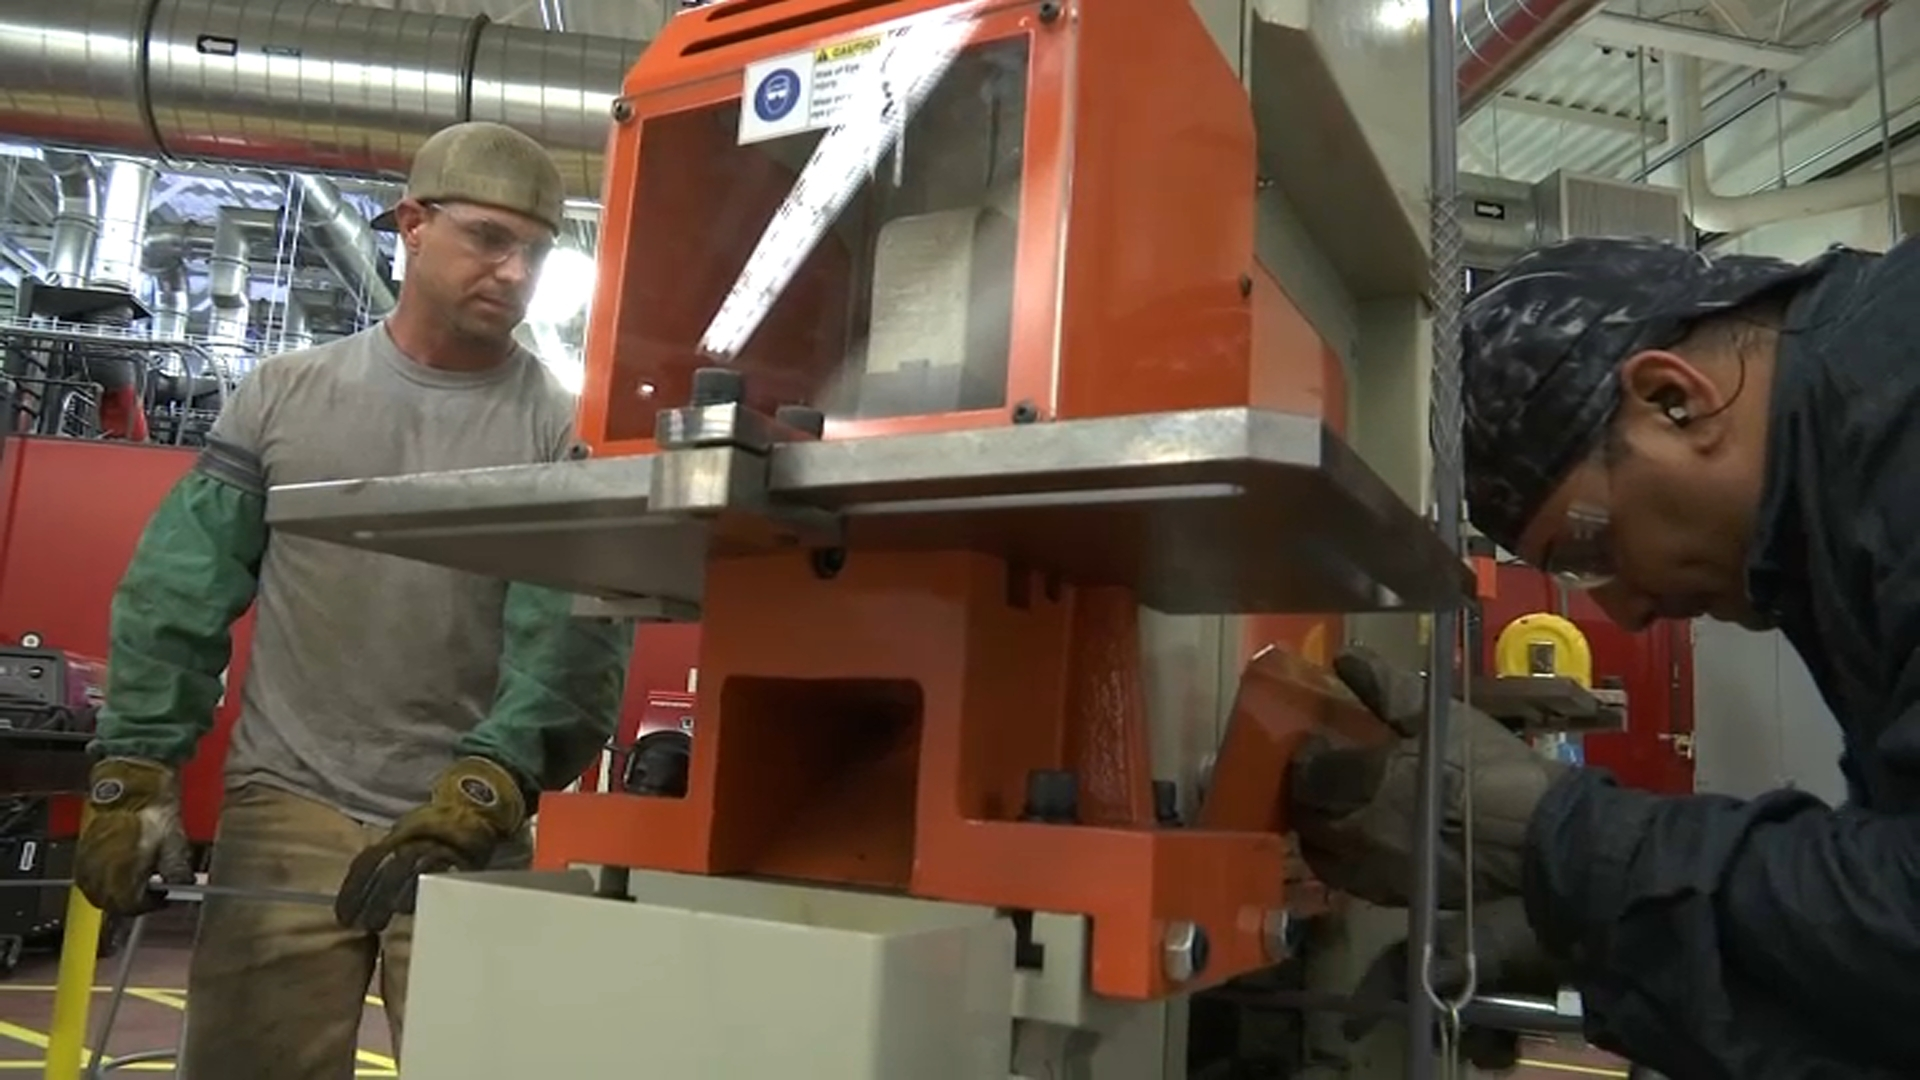 nbcconnecticut.com - Dan Corcoran - New Haven Public Schools to Offer Students Manufacturing Training